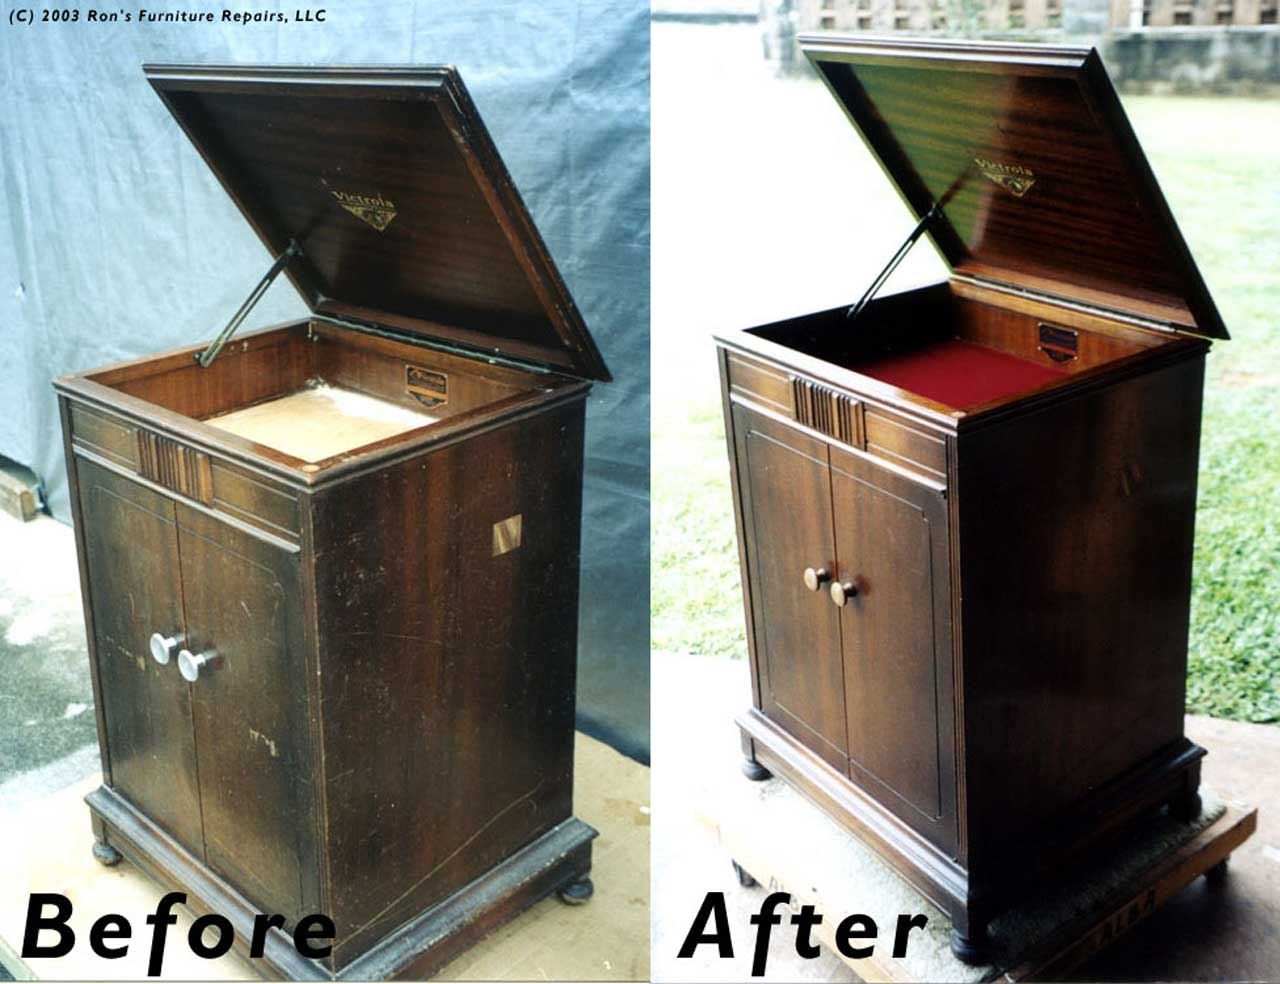 Dr Woodwell S Wood Elixir Ron S Furniture Repairs